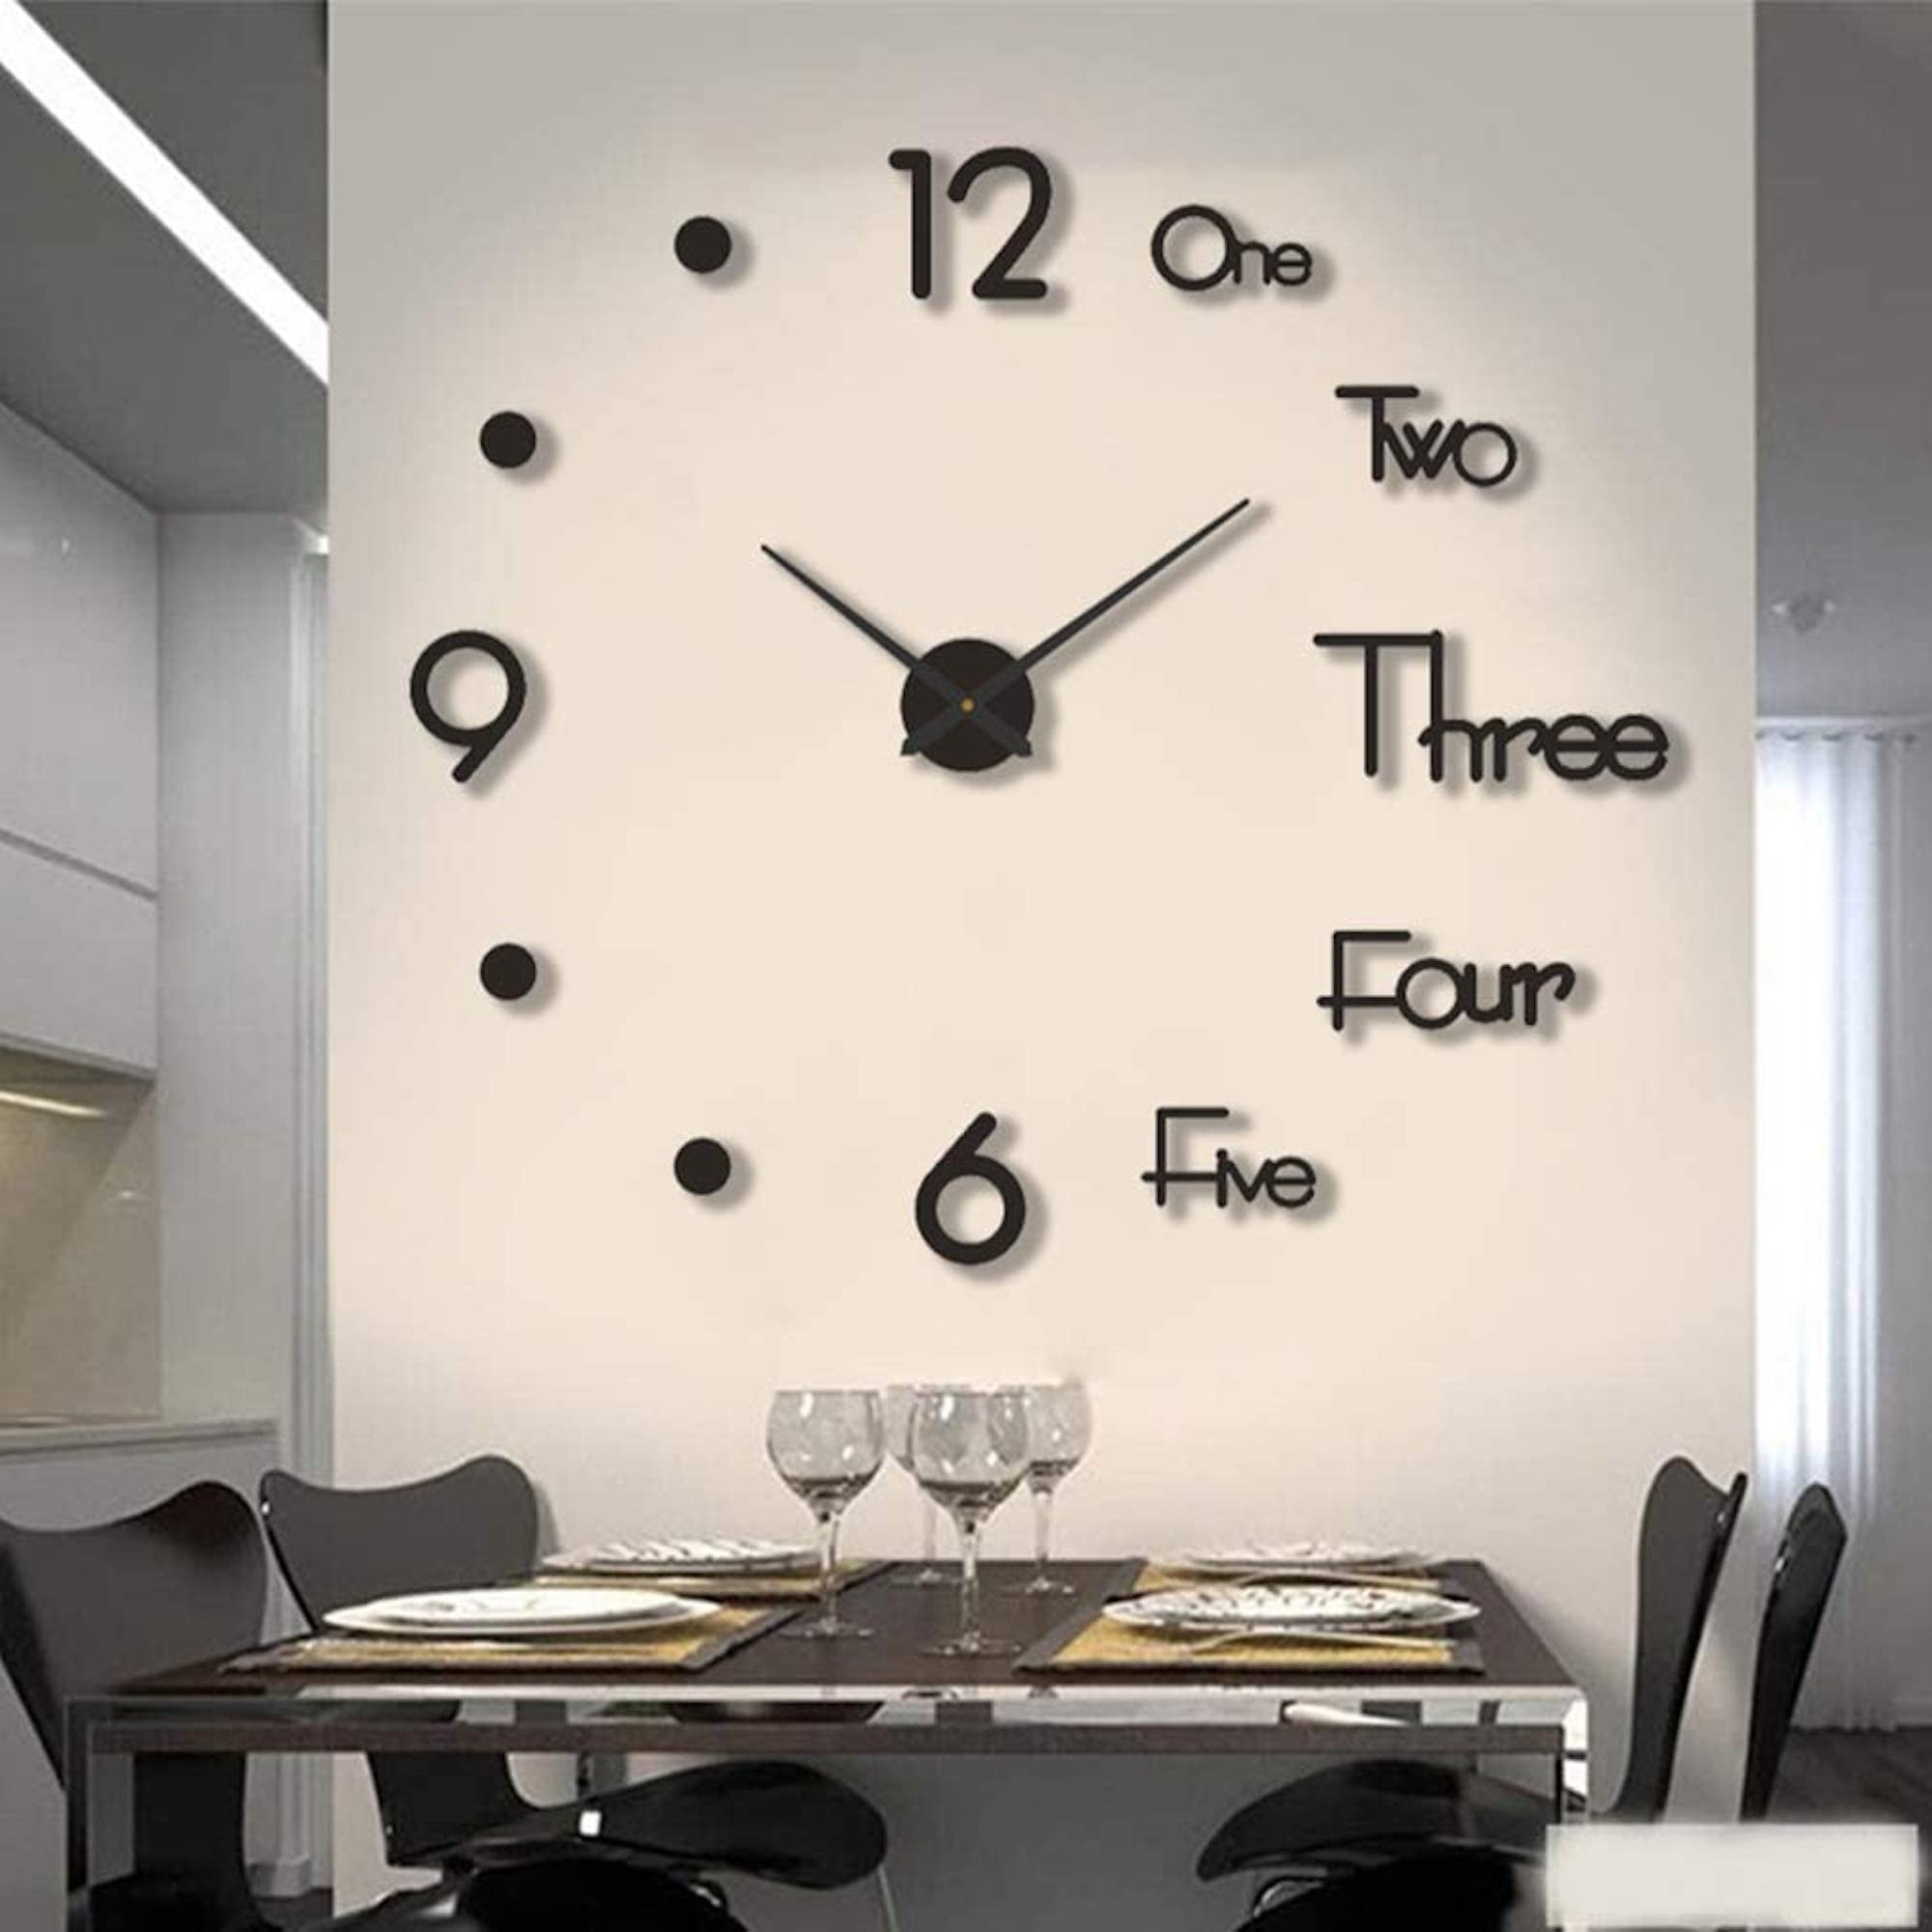 VinJoyce LARGE 3D DIY Wall Clock, Large Wall Clocks for Living Room Decor, Silent, Modern Wall Clock for Kitchen, Office, School, Home, Bedroom, Living Room Decor